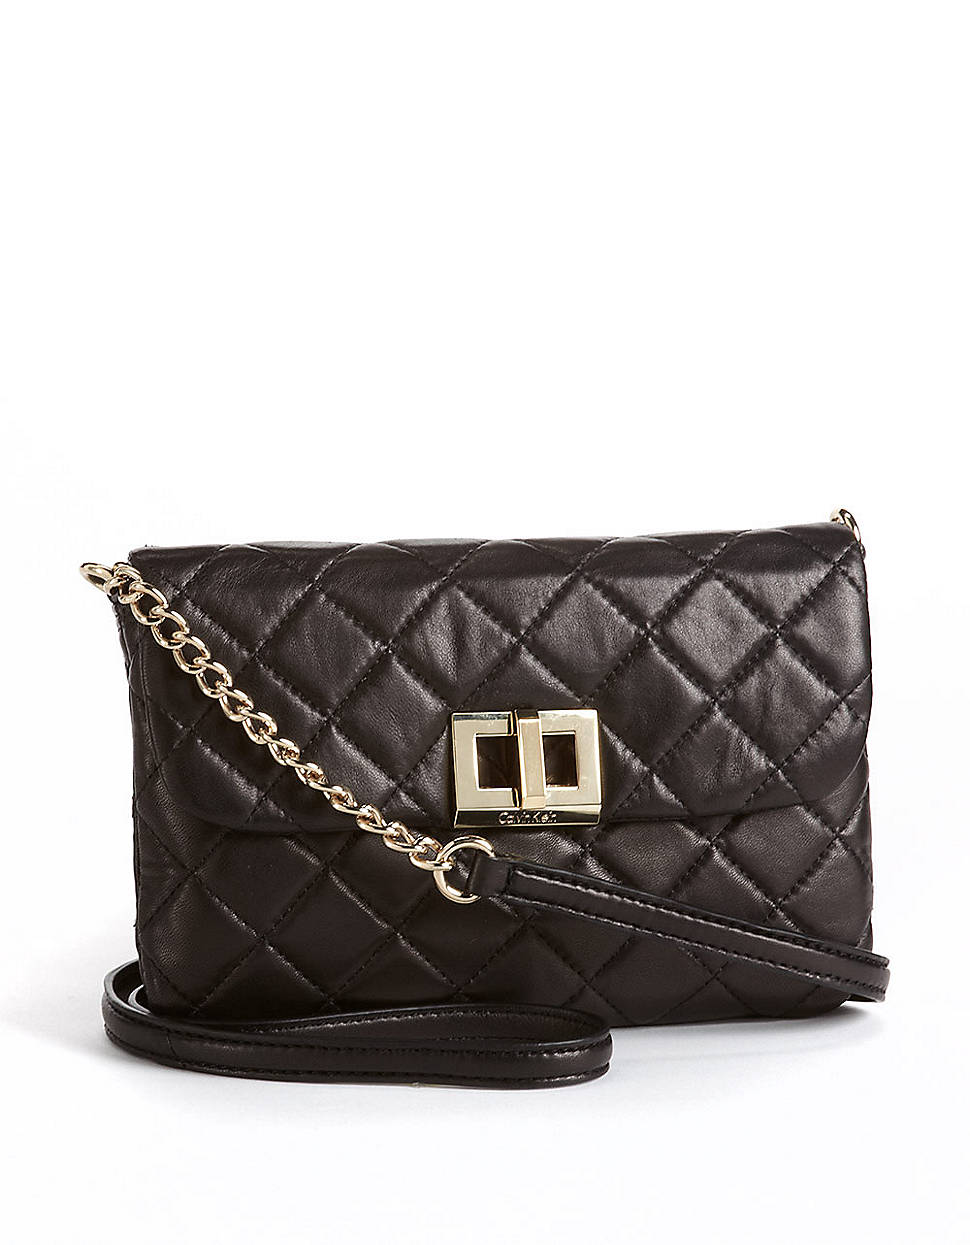 Calvin Klein Quilted Leather Crossbody Bag In Black Lyst